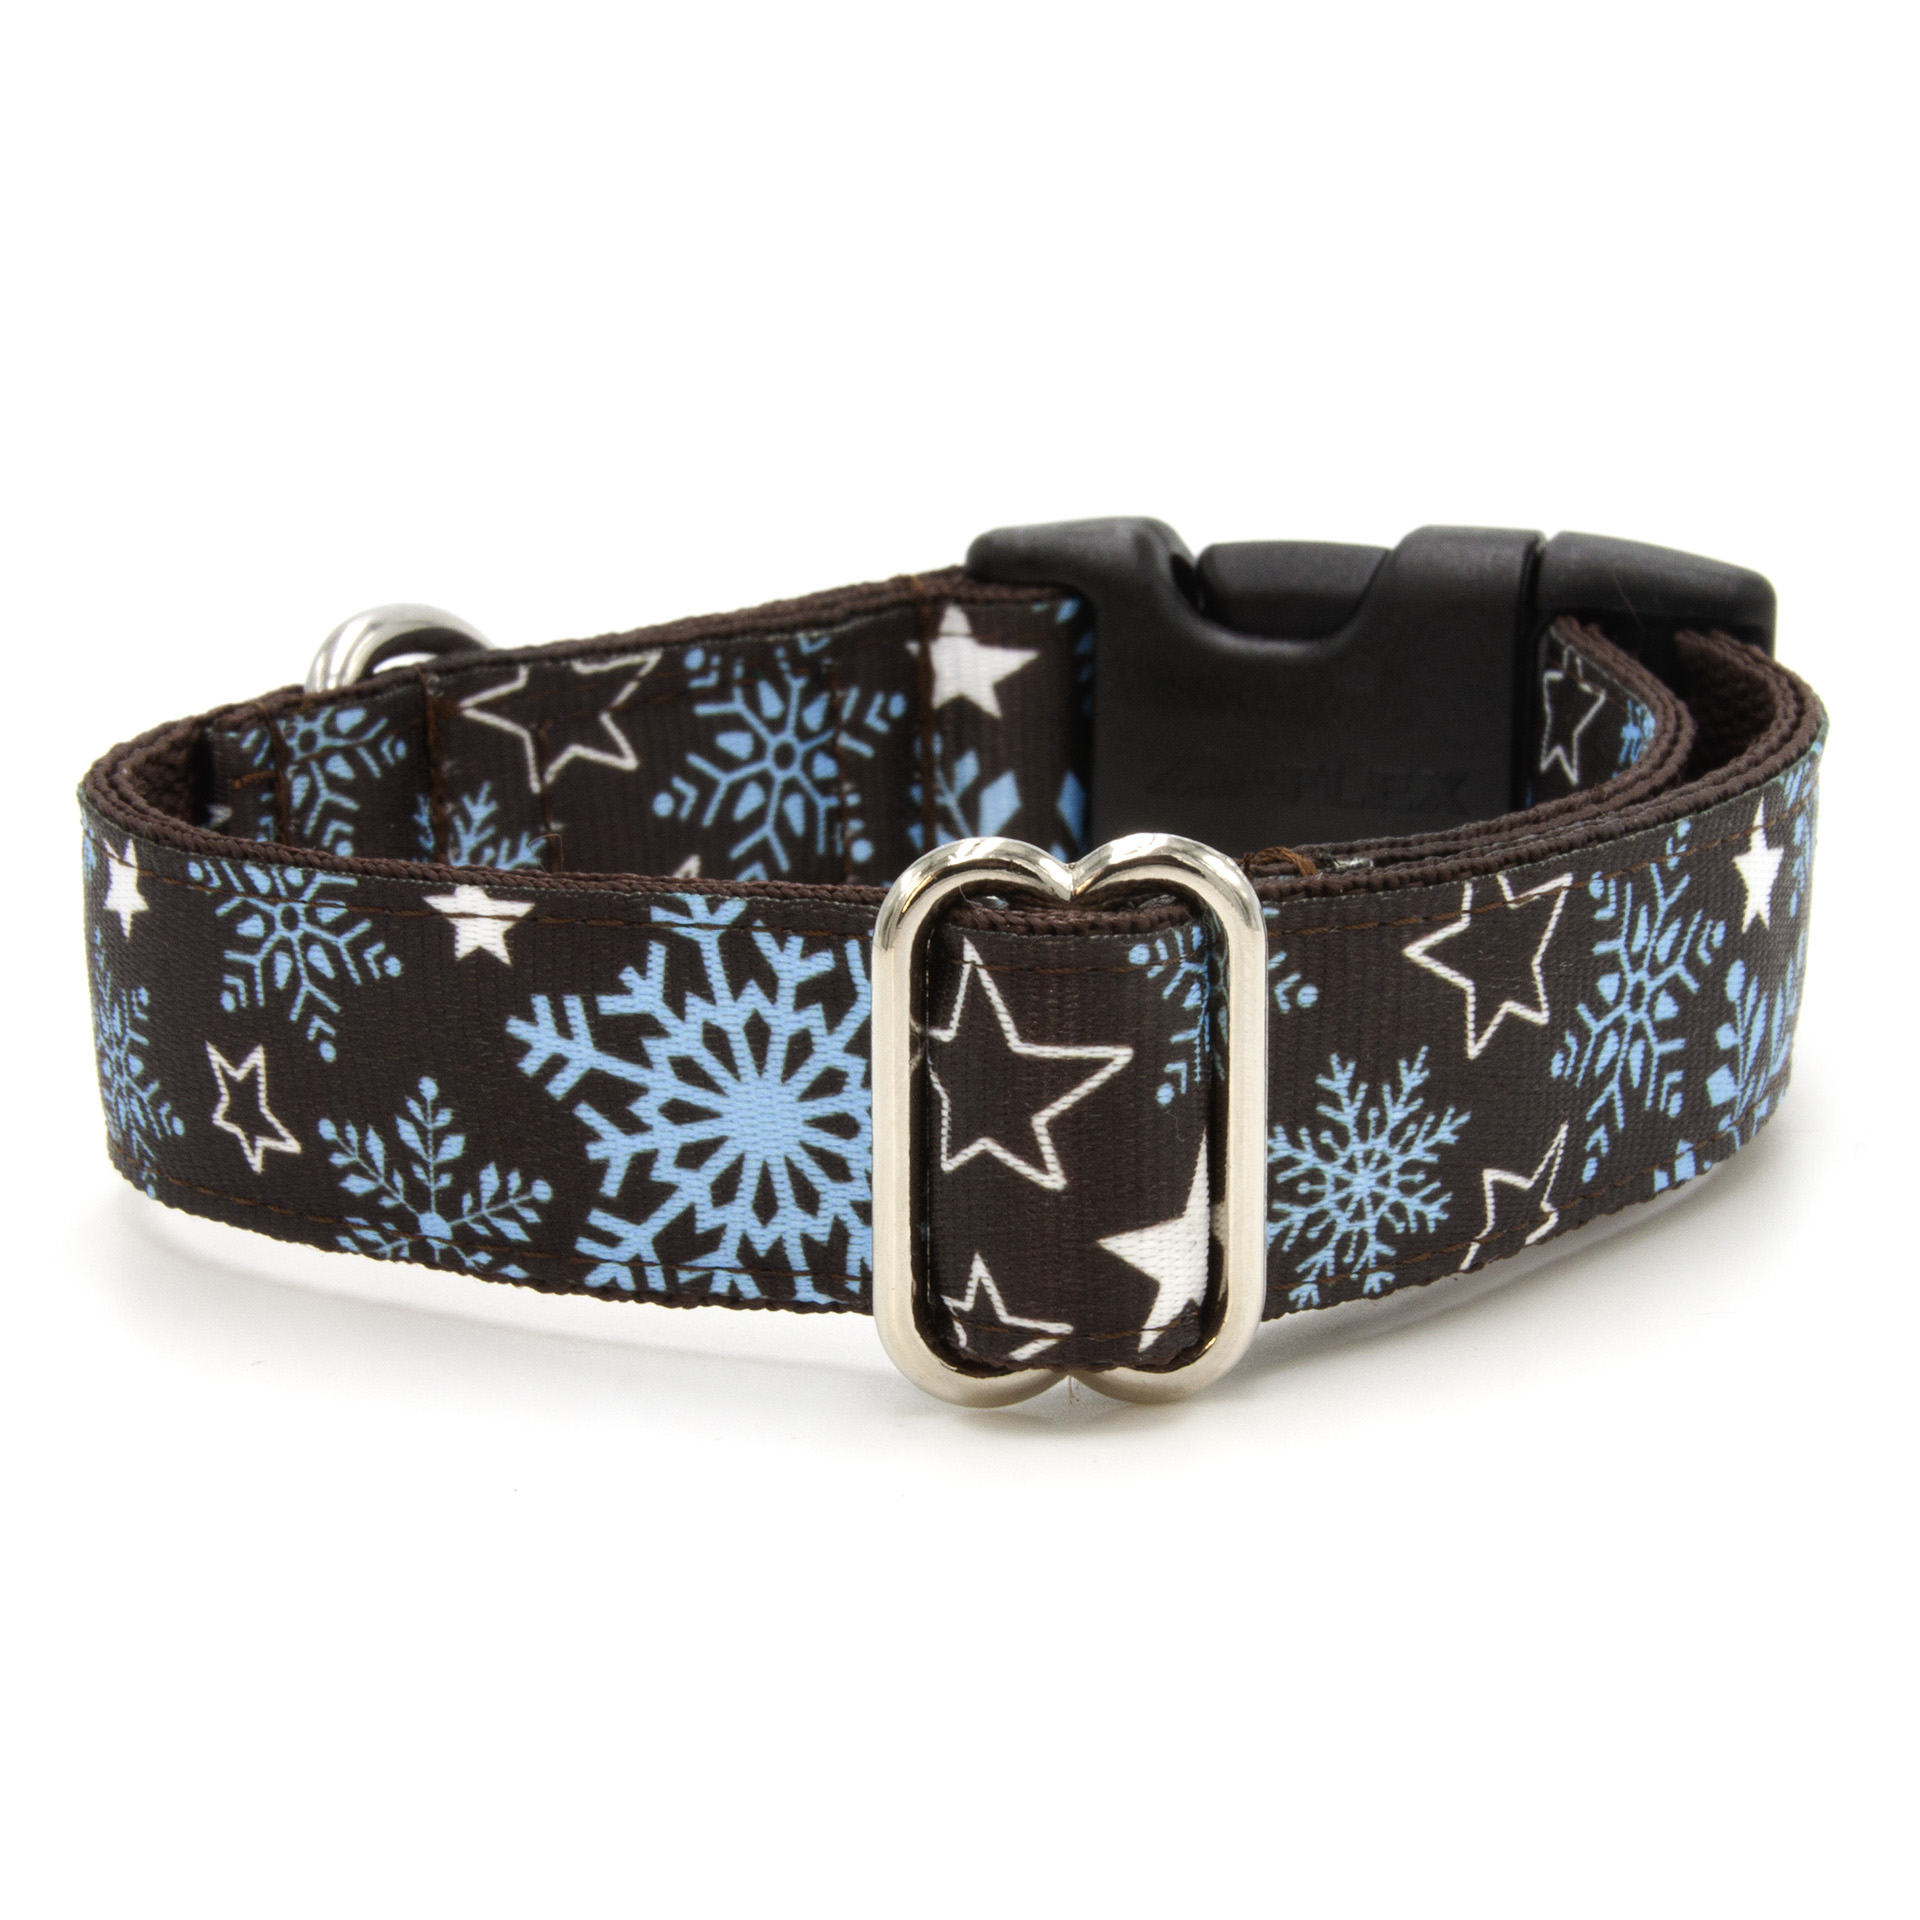 Snowfall dog collar